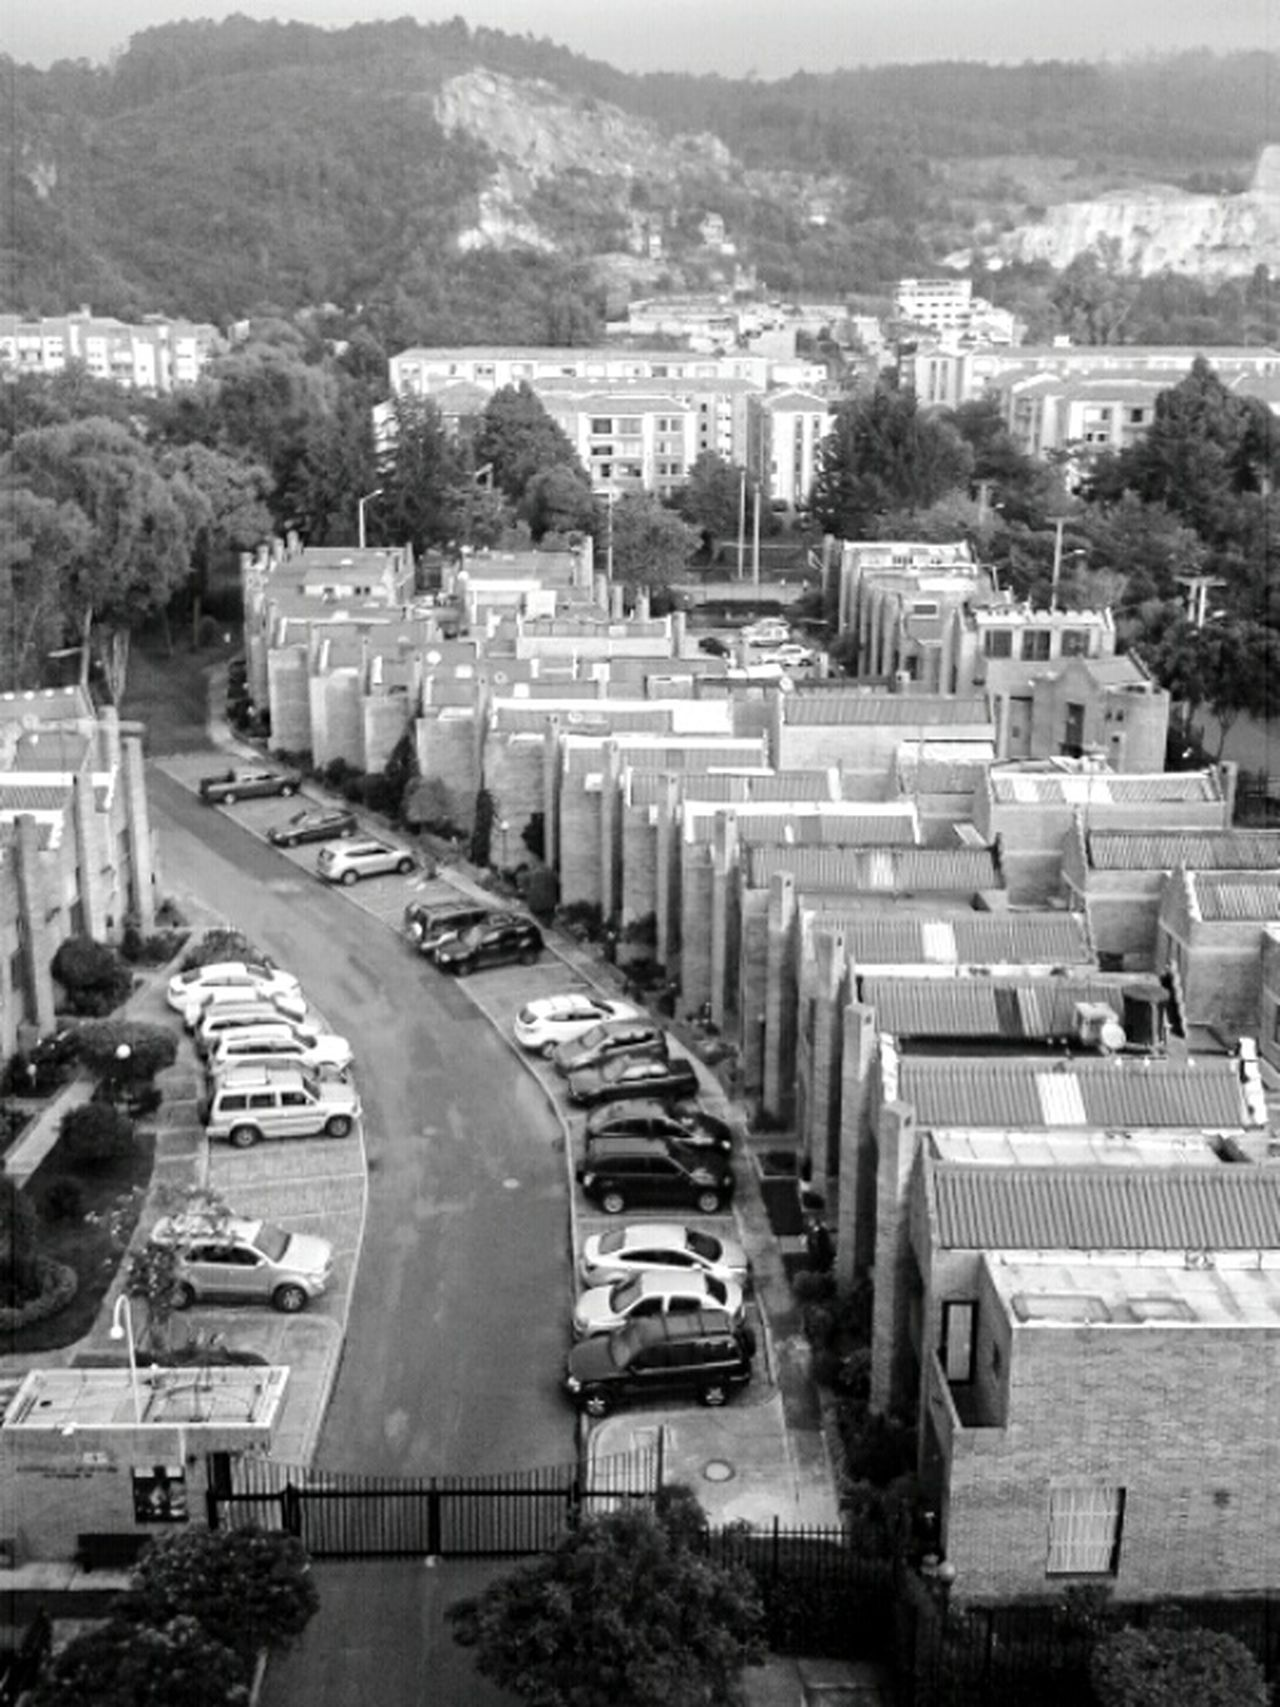 Quintas B | High Angle View City Built Structure Tree Outdoors Day Architecture Cityscape Neighborhood Blackandwhite Streetphoto_bw Monochrome Blackandwhite Photography Mobilephotography City Residential Building Building Exterior Bogota,colombia. Neighbourhood Urban Landscape Architecture